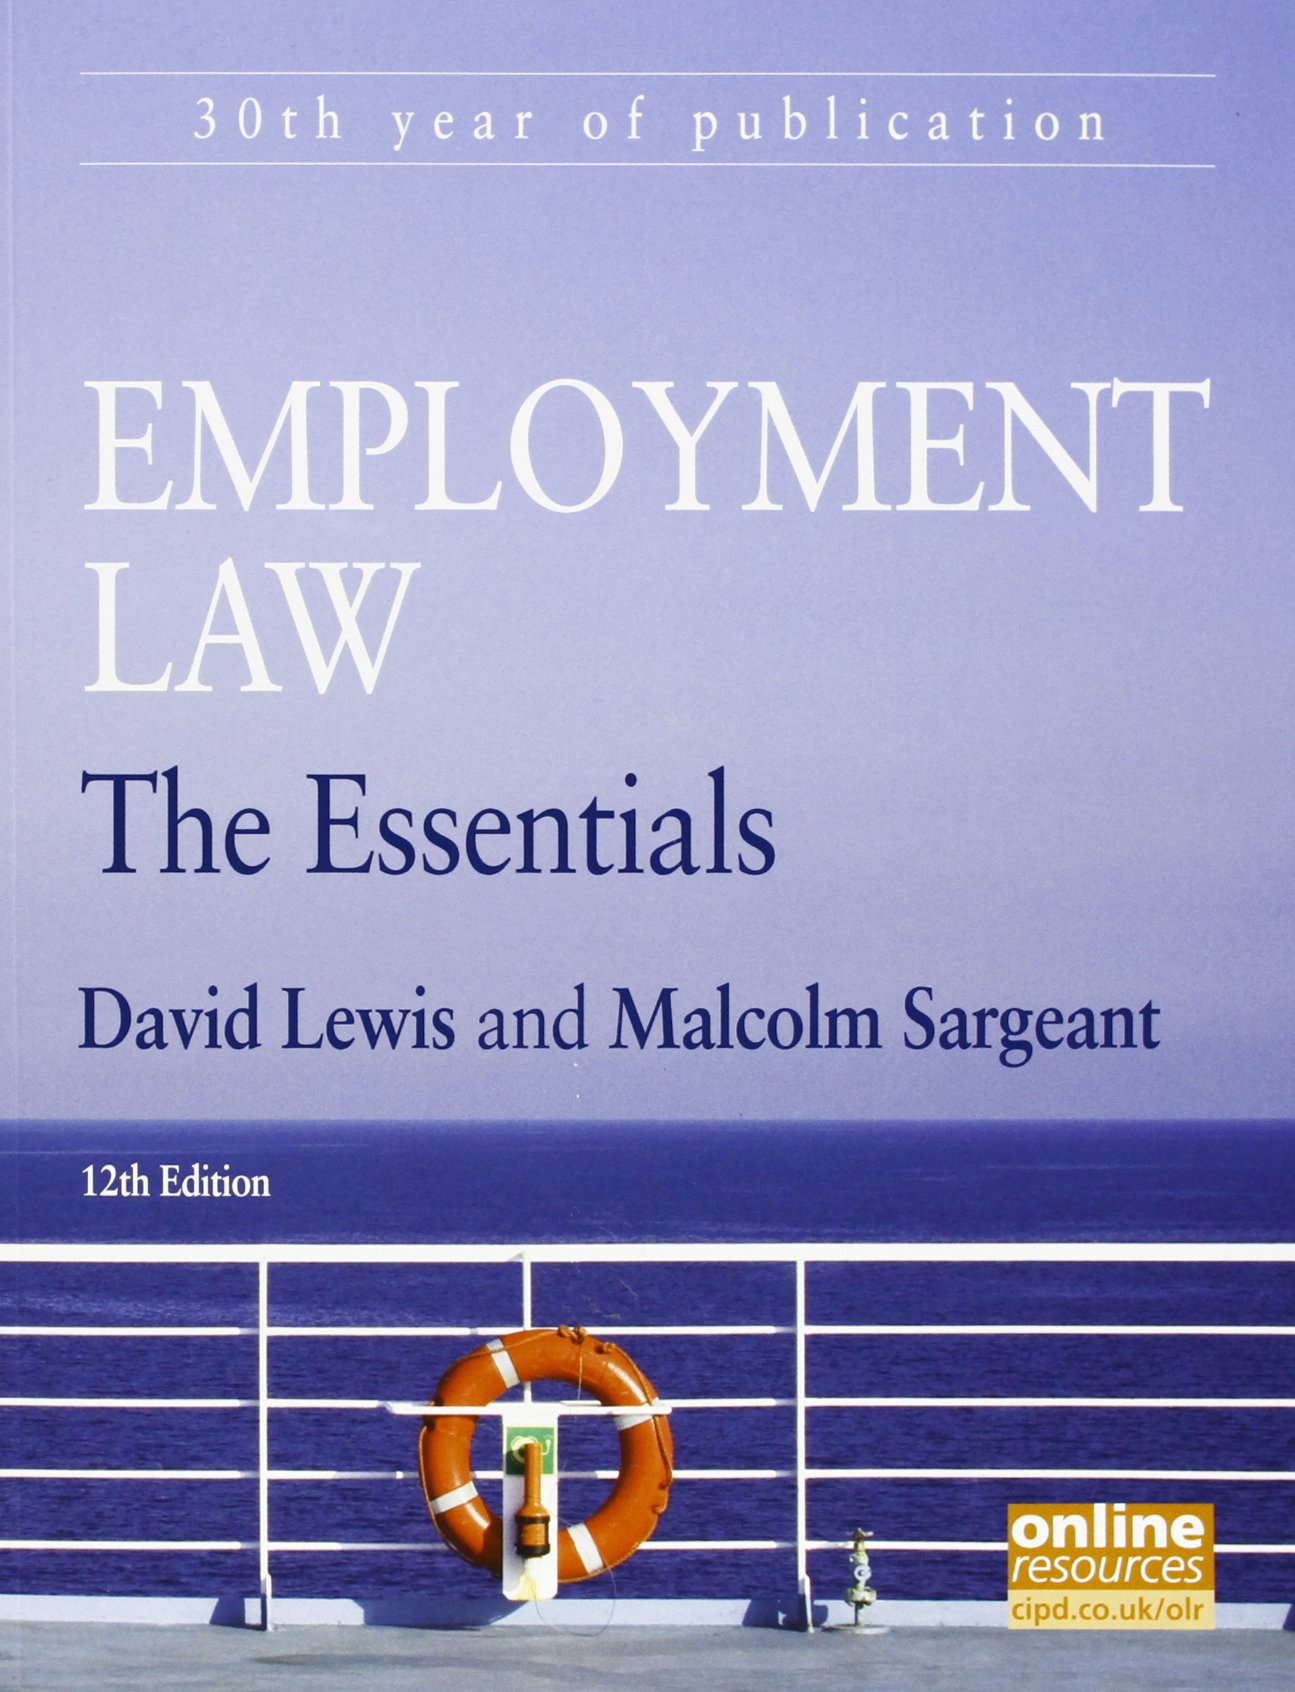 Employment Law: The Essentials: David Lewis, Malcolm Sargeant:  9781843983156: Amazon: Books